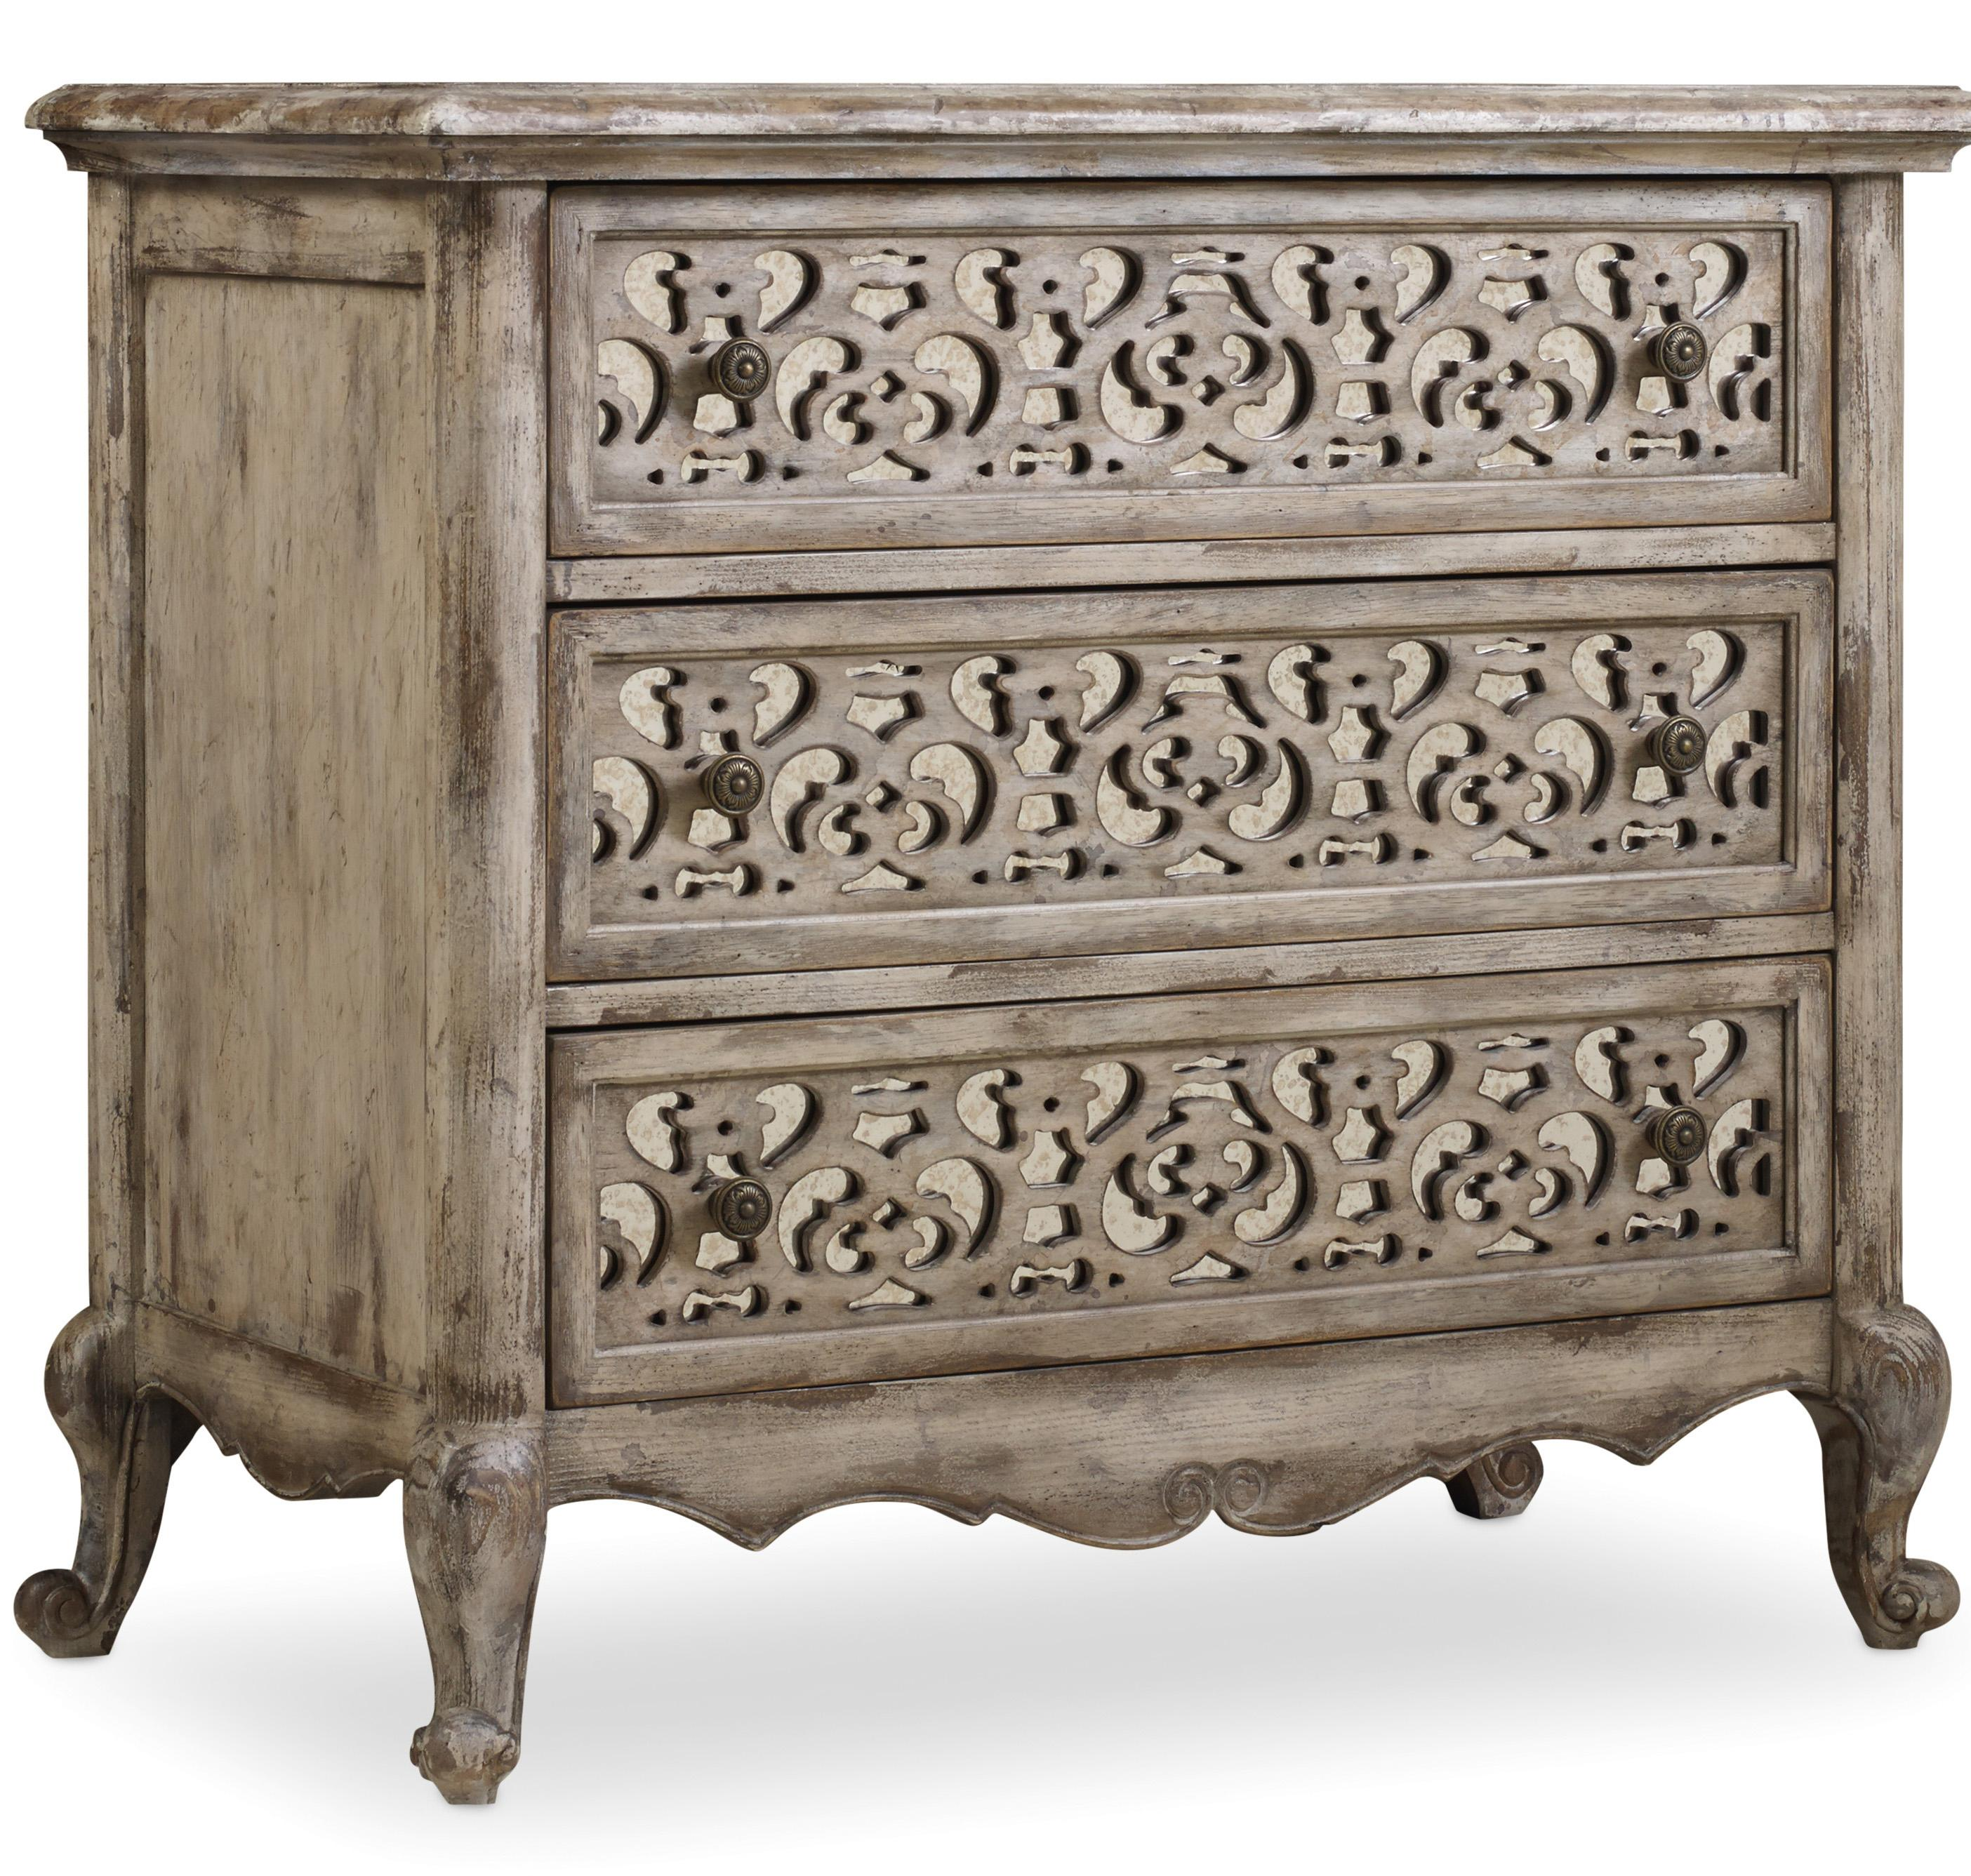 Chatelet Fretwork Nightstand by Hooker Furniture at Miller Waldrop Furniture and Decor